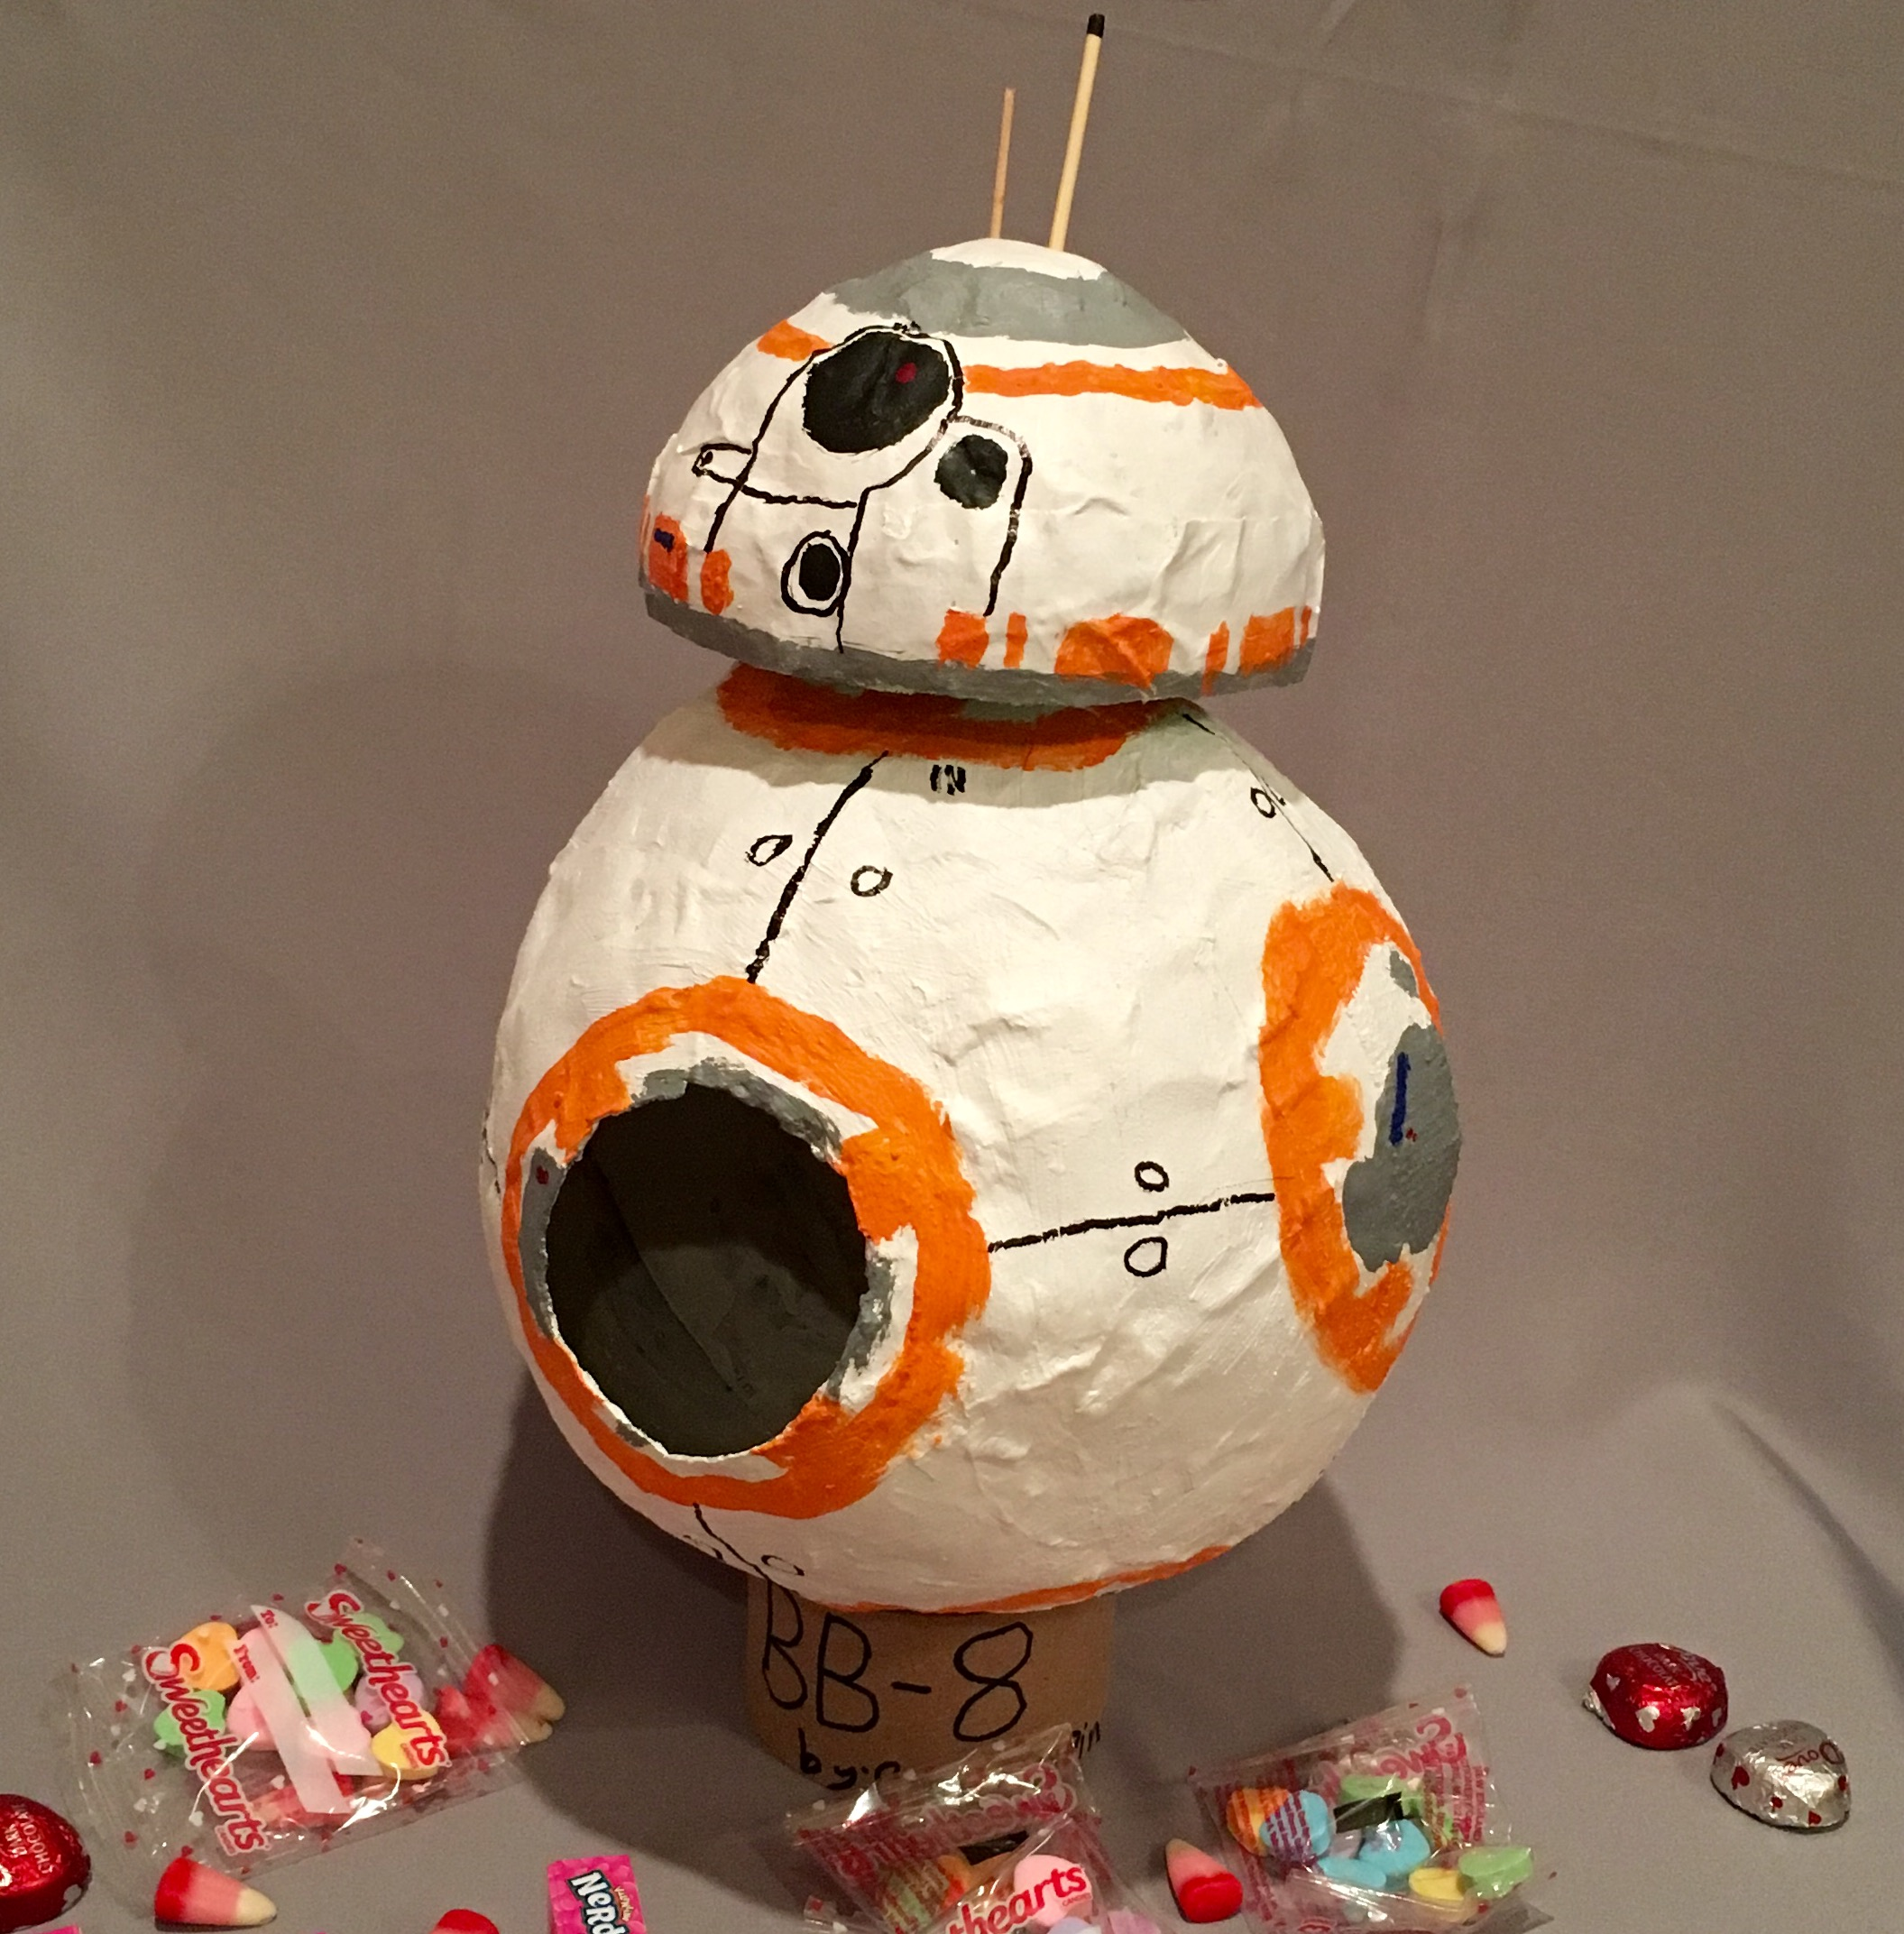 BB8 robot from star wars - noelle o designs